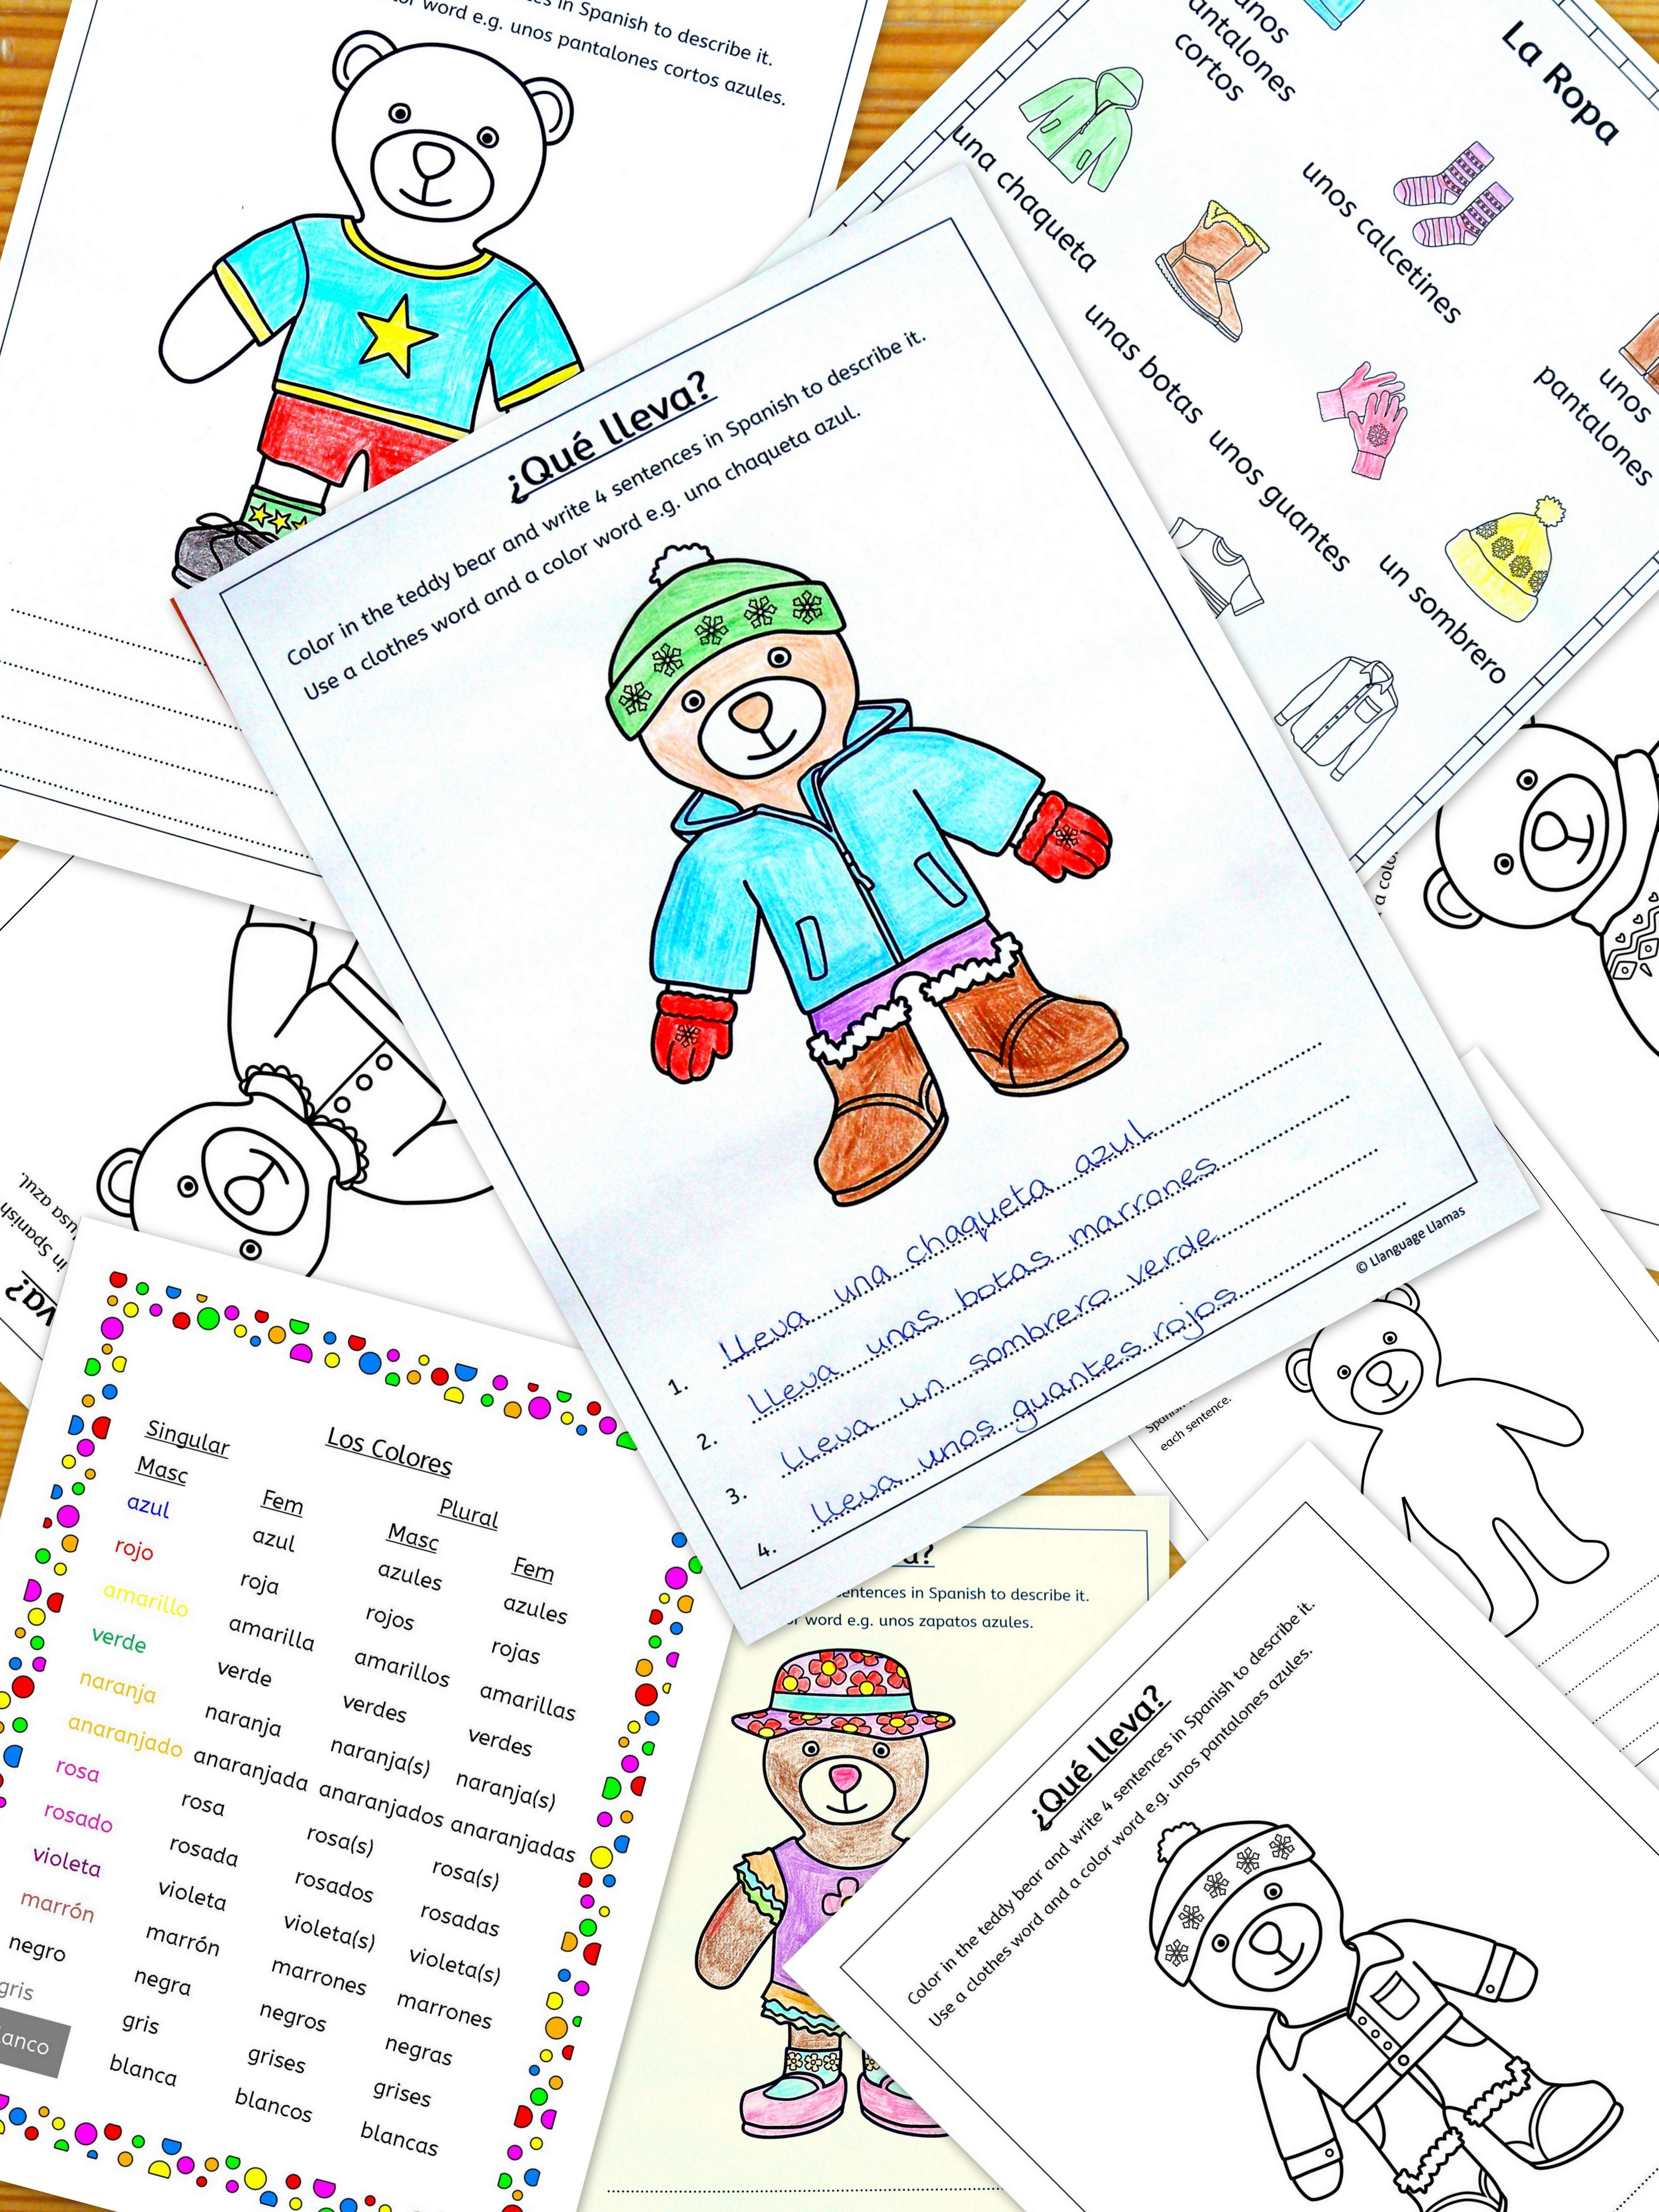 Spanish Clothes And Color Vocabulary In A Fun Teddy Bear Activity Elementary Spanish Spanish Clothing La Ropa Spanish Activities [ 5120 x 3841 Pixel ]